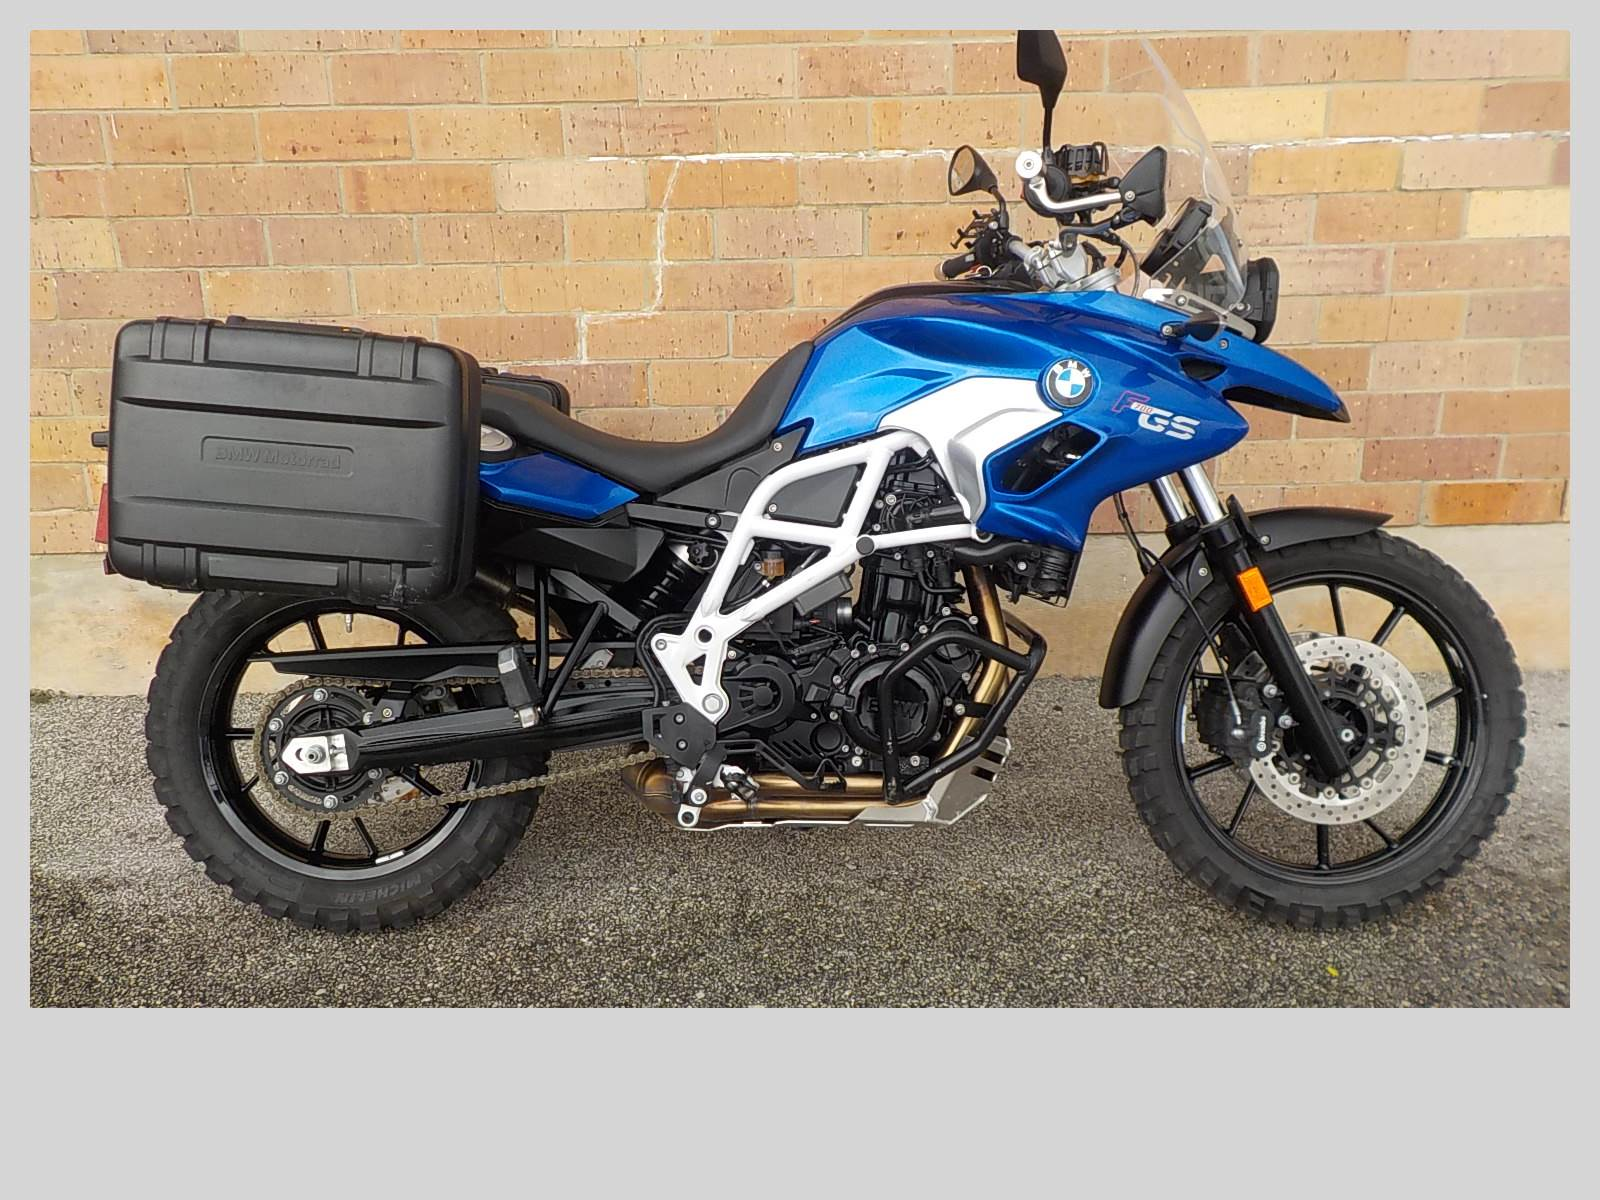 2018 BMW F 700 GS for sale 18631